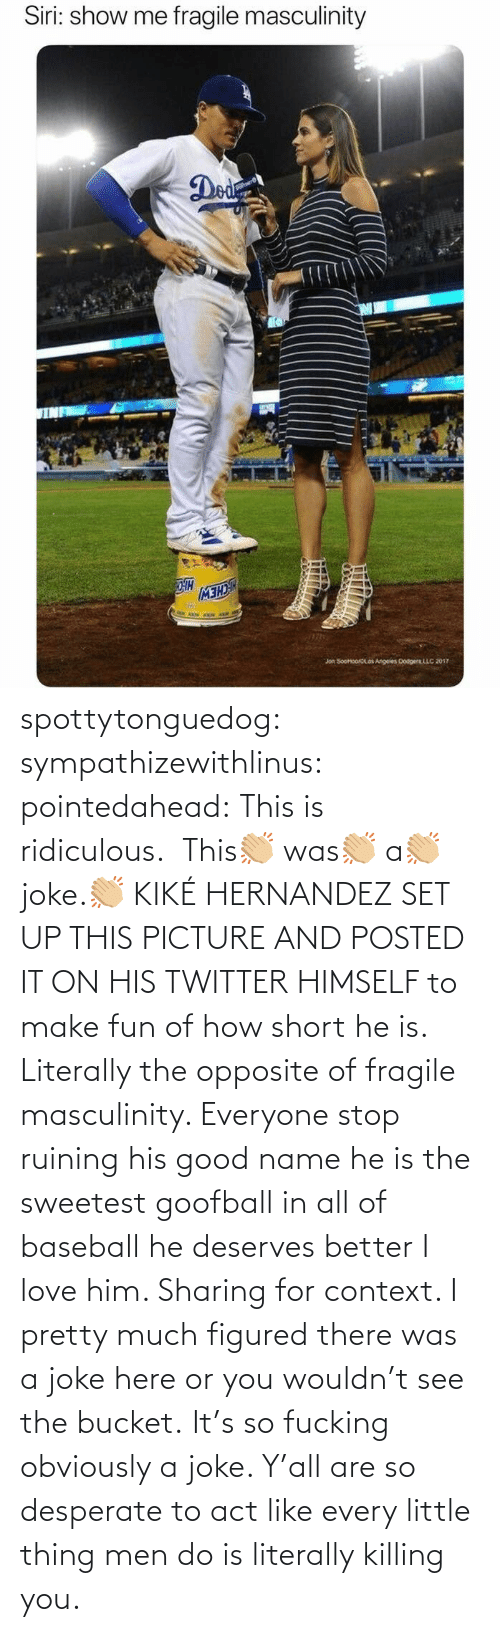 Desperate: spottytonguedog:  sympathizewithlinus:   pointedahead: This is ridiculous.  This👏🏼 was👏🏼 a👏🏼 joke.👏🏼 KIKÉ HERNANDEZ SET UP THIS PICTURE AND POSTED IT ON HIS TWITTER HIMSELF to make fun of how short he is. Literally the opposite of fragile masculinity. Everyone stop ruining his good name he is the sweetest goofball in all of baseball he deserves better I love him.    Sharing for context. I pretty much figured there was a joke here or you wouldn't see the bucket.    It's so fucking obviously a joke. Y'all are so desperate to act like every little thing men do is literally killing you.